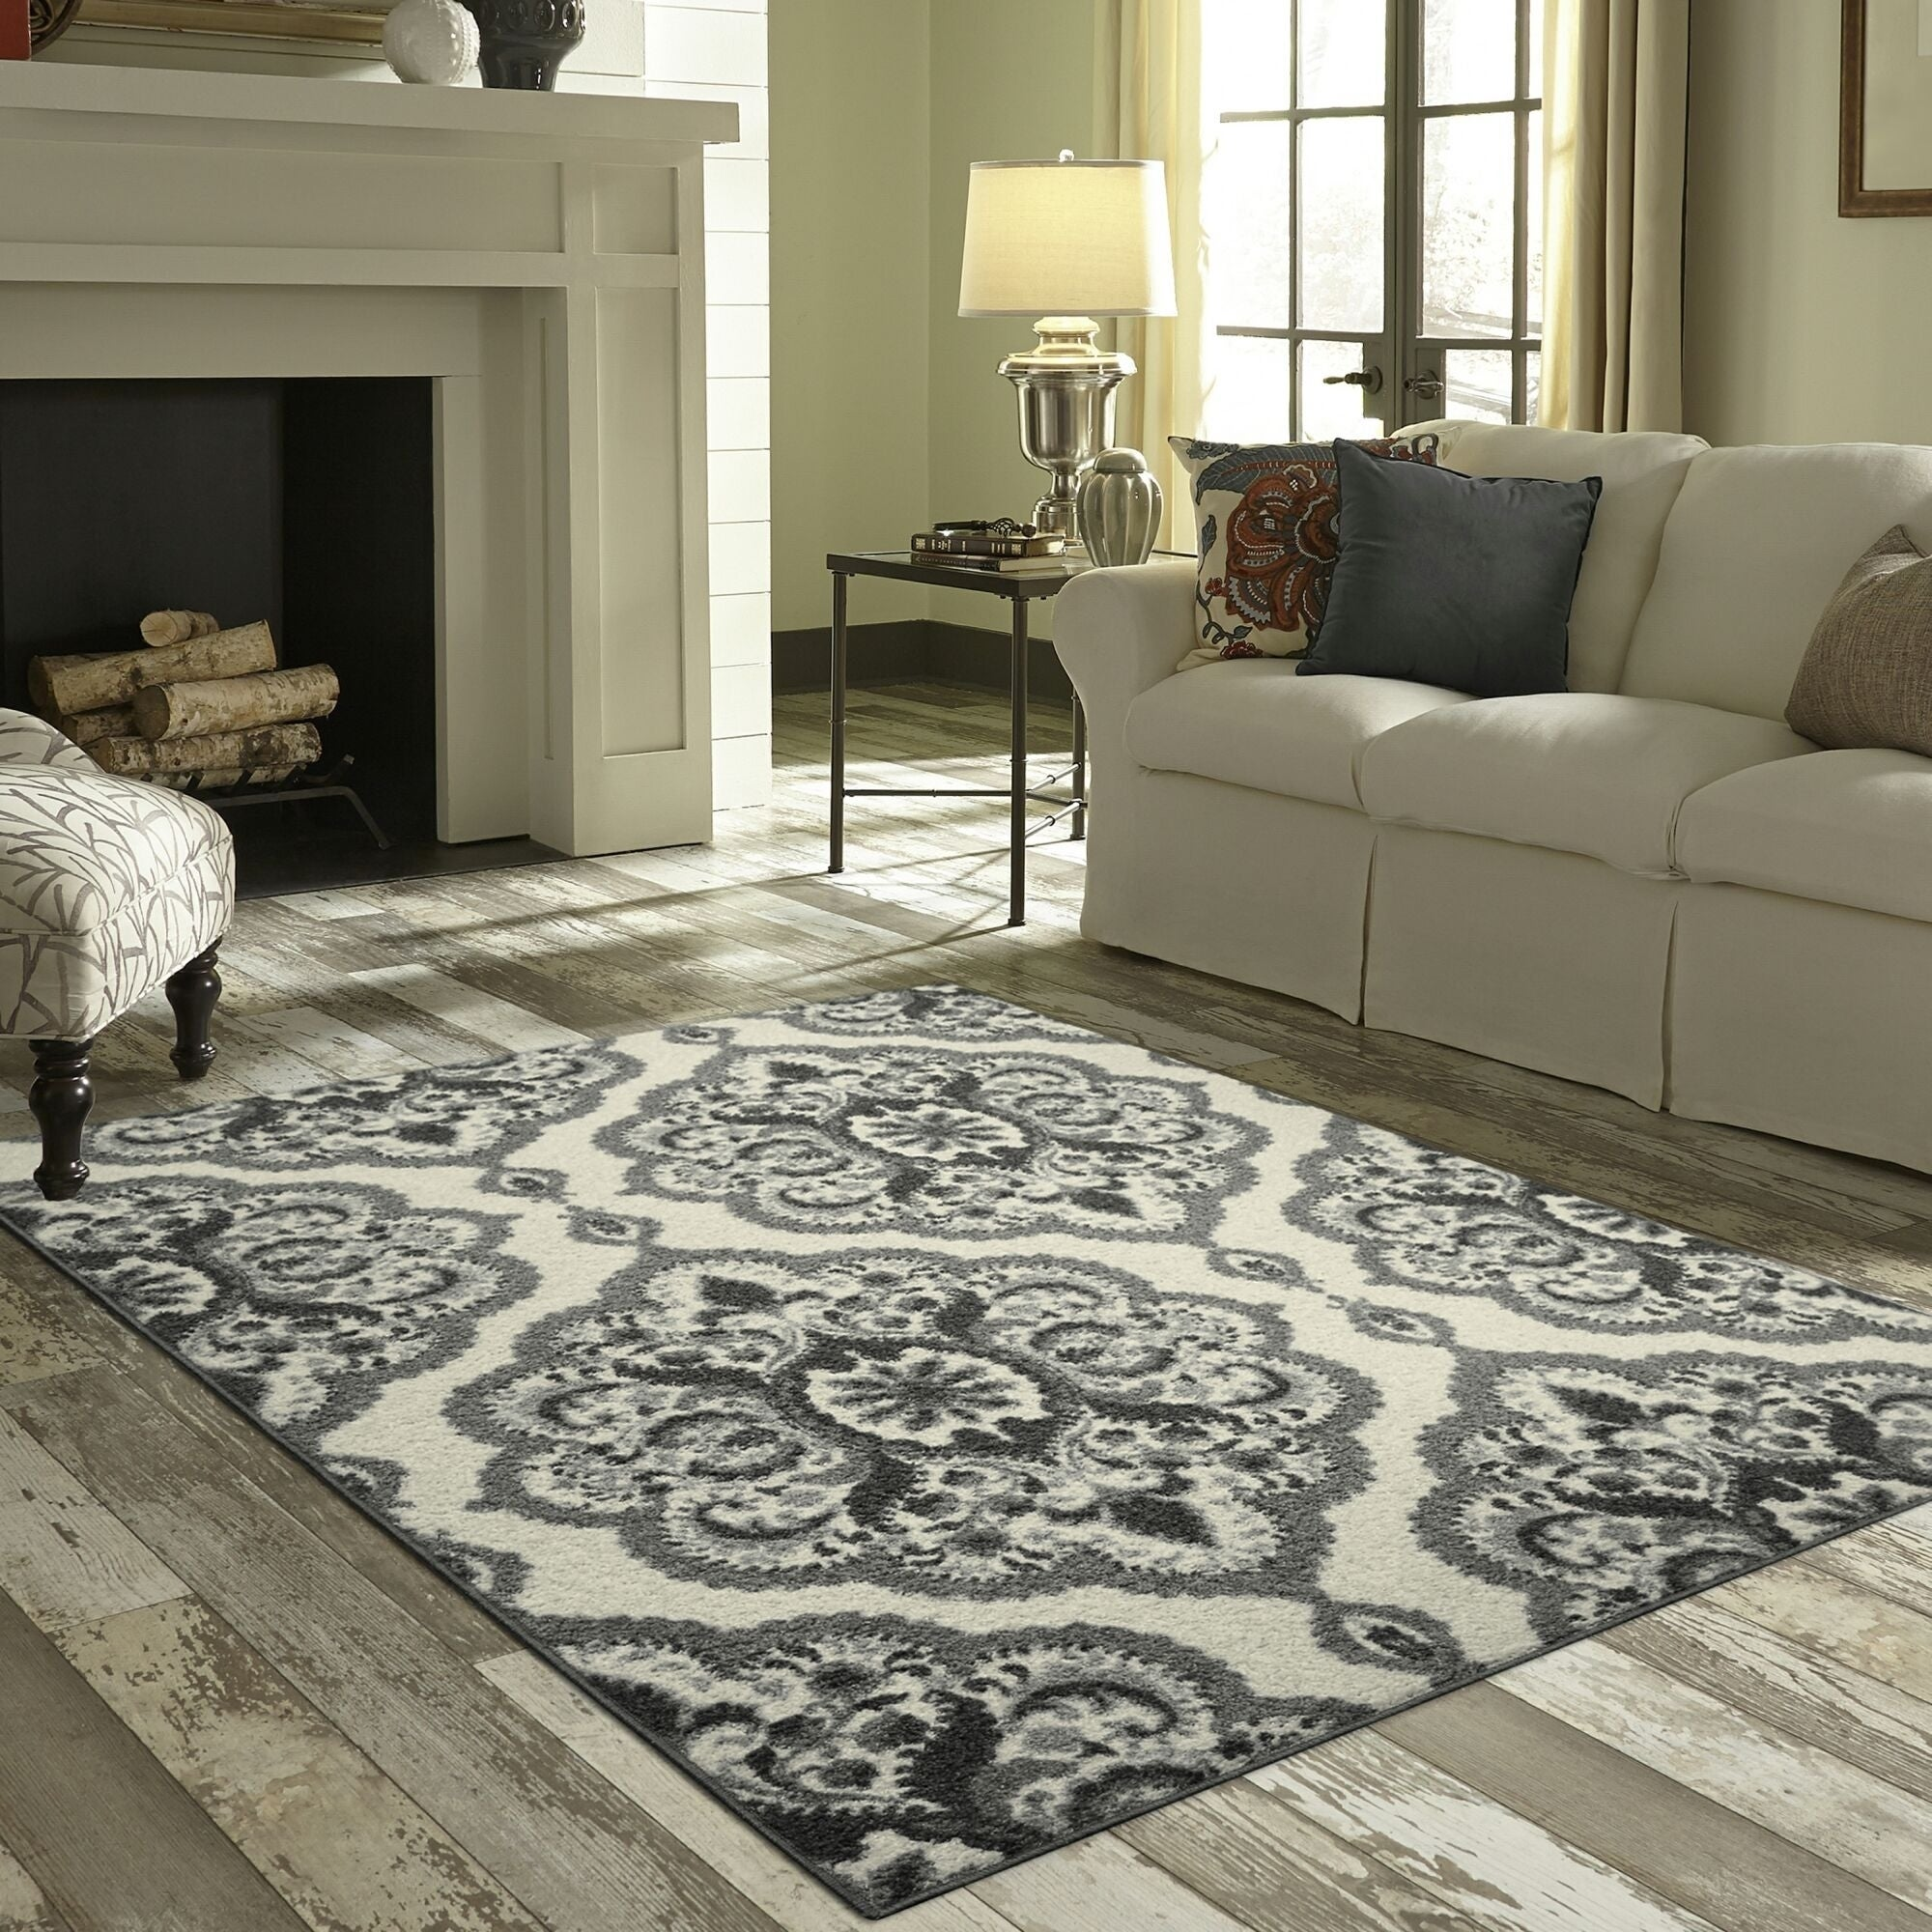 Maples Rugs Derby Oversized Floral Medallion Accent Rug (2\'6\